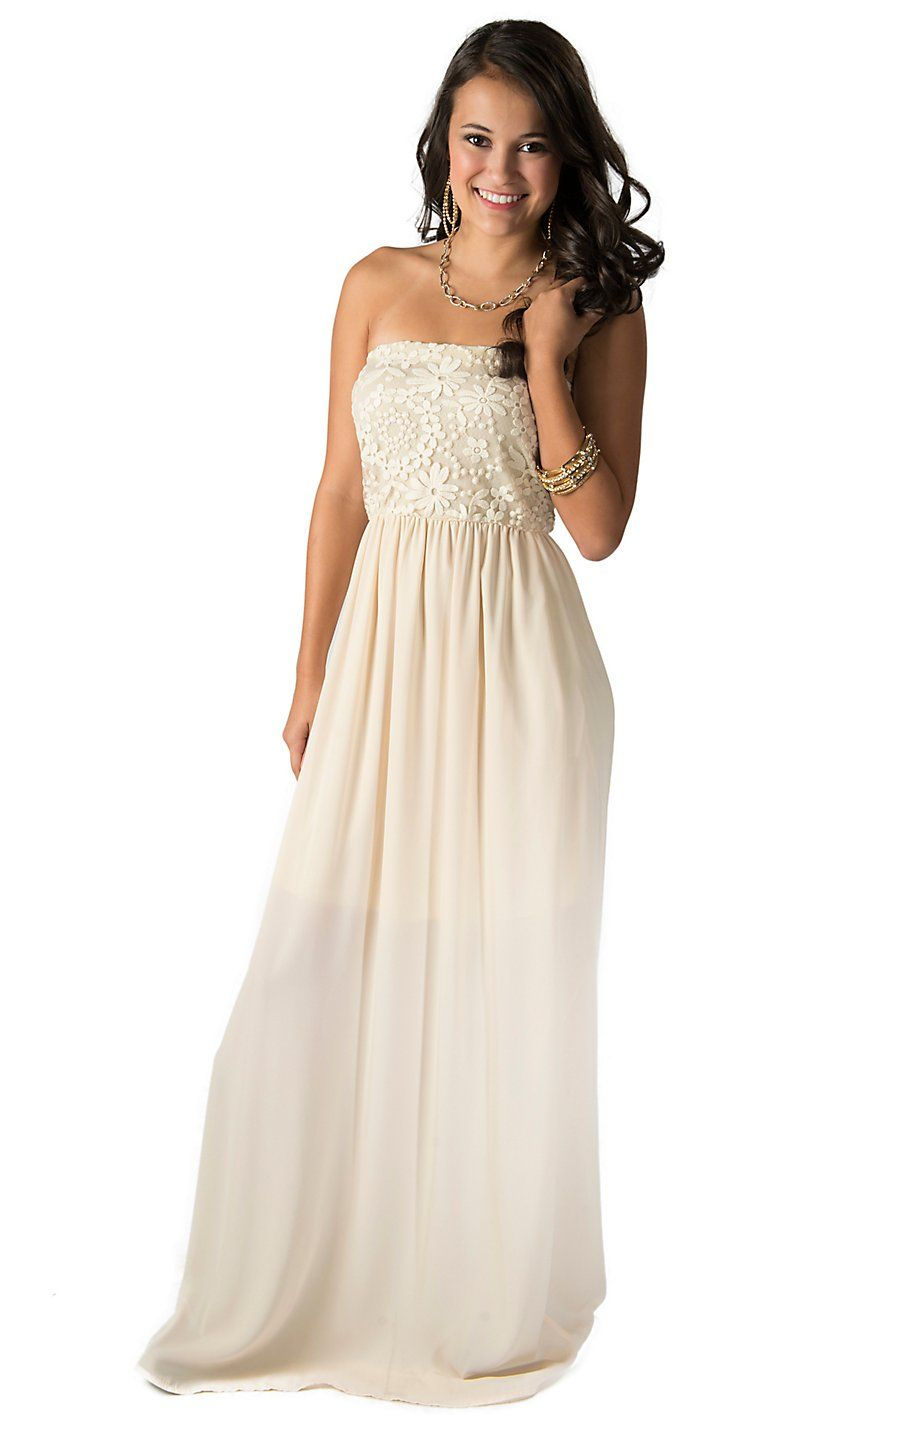 14aac4d9795 Karlie Women s Ivory with Floral Lace Bustier Strapless Maxi Dress ...